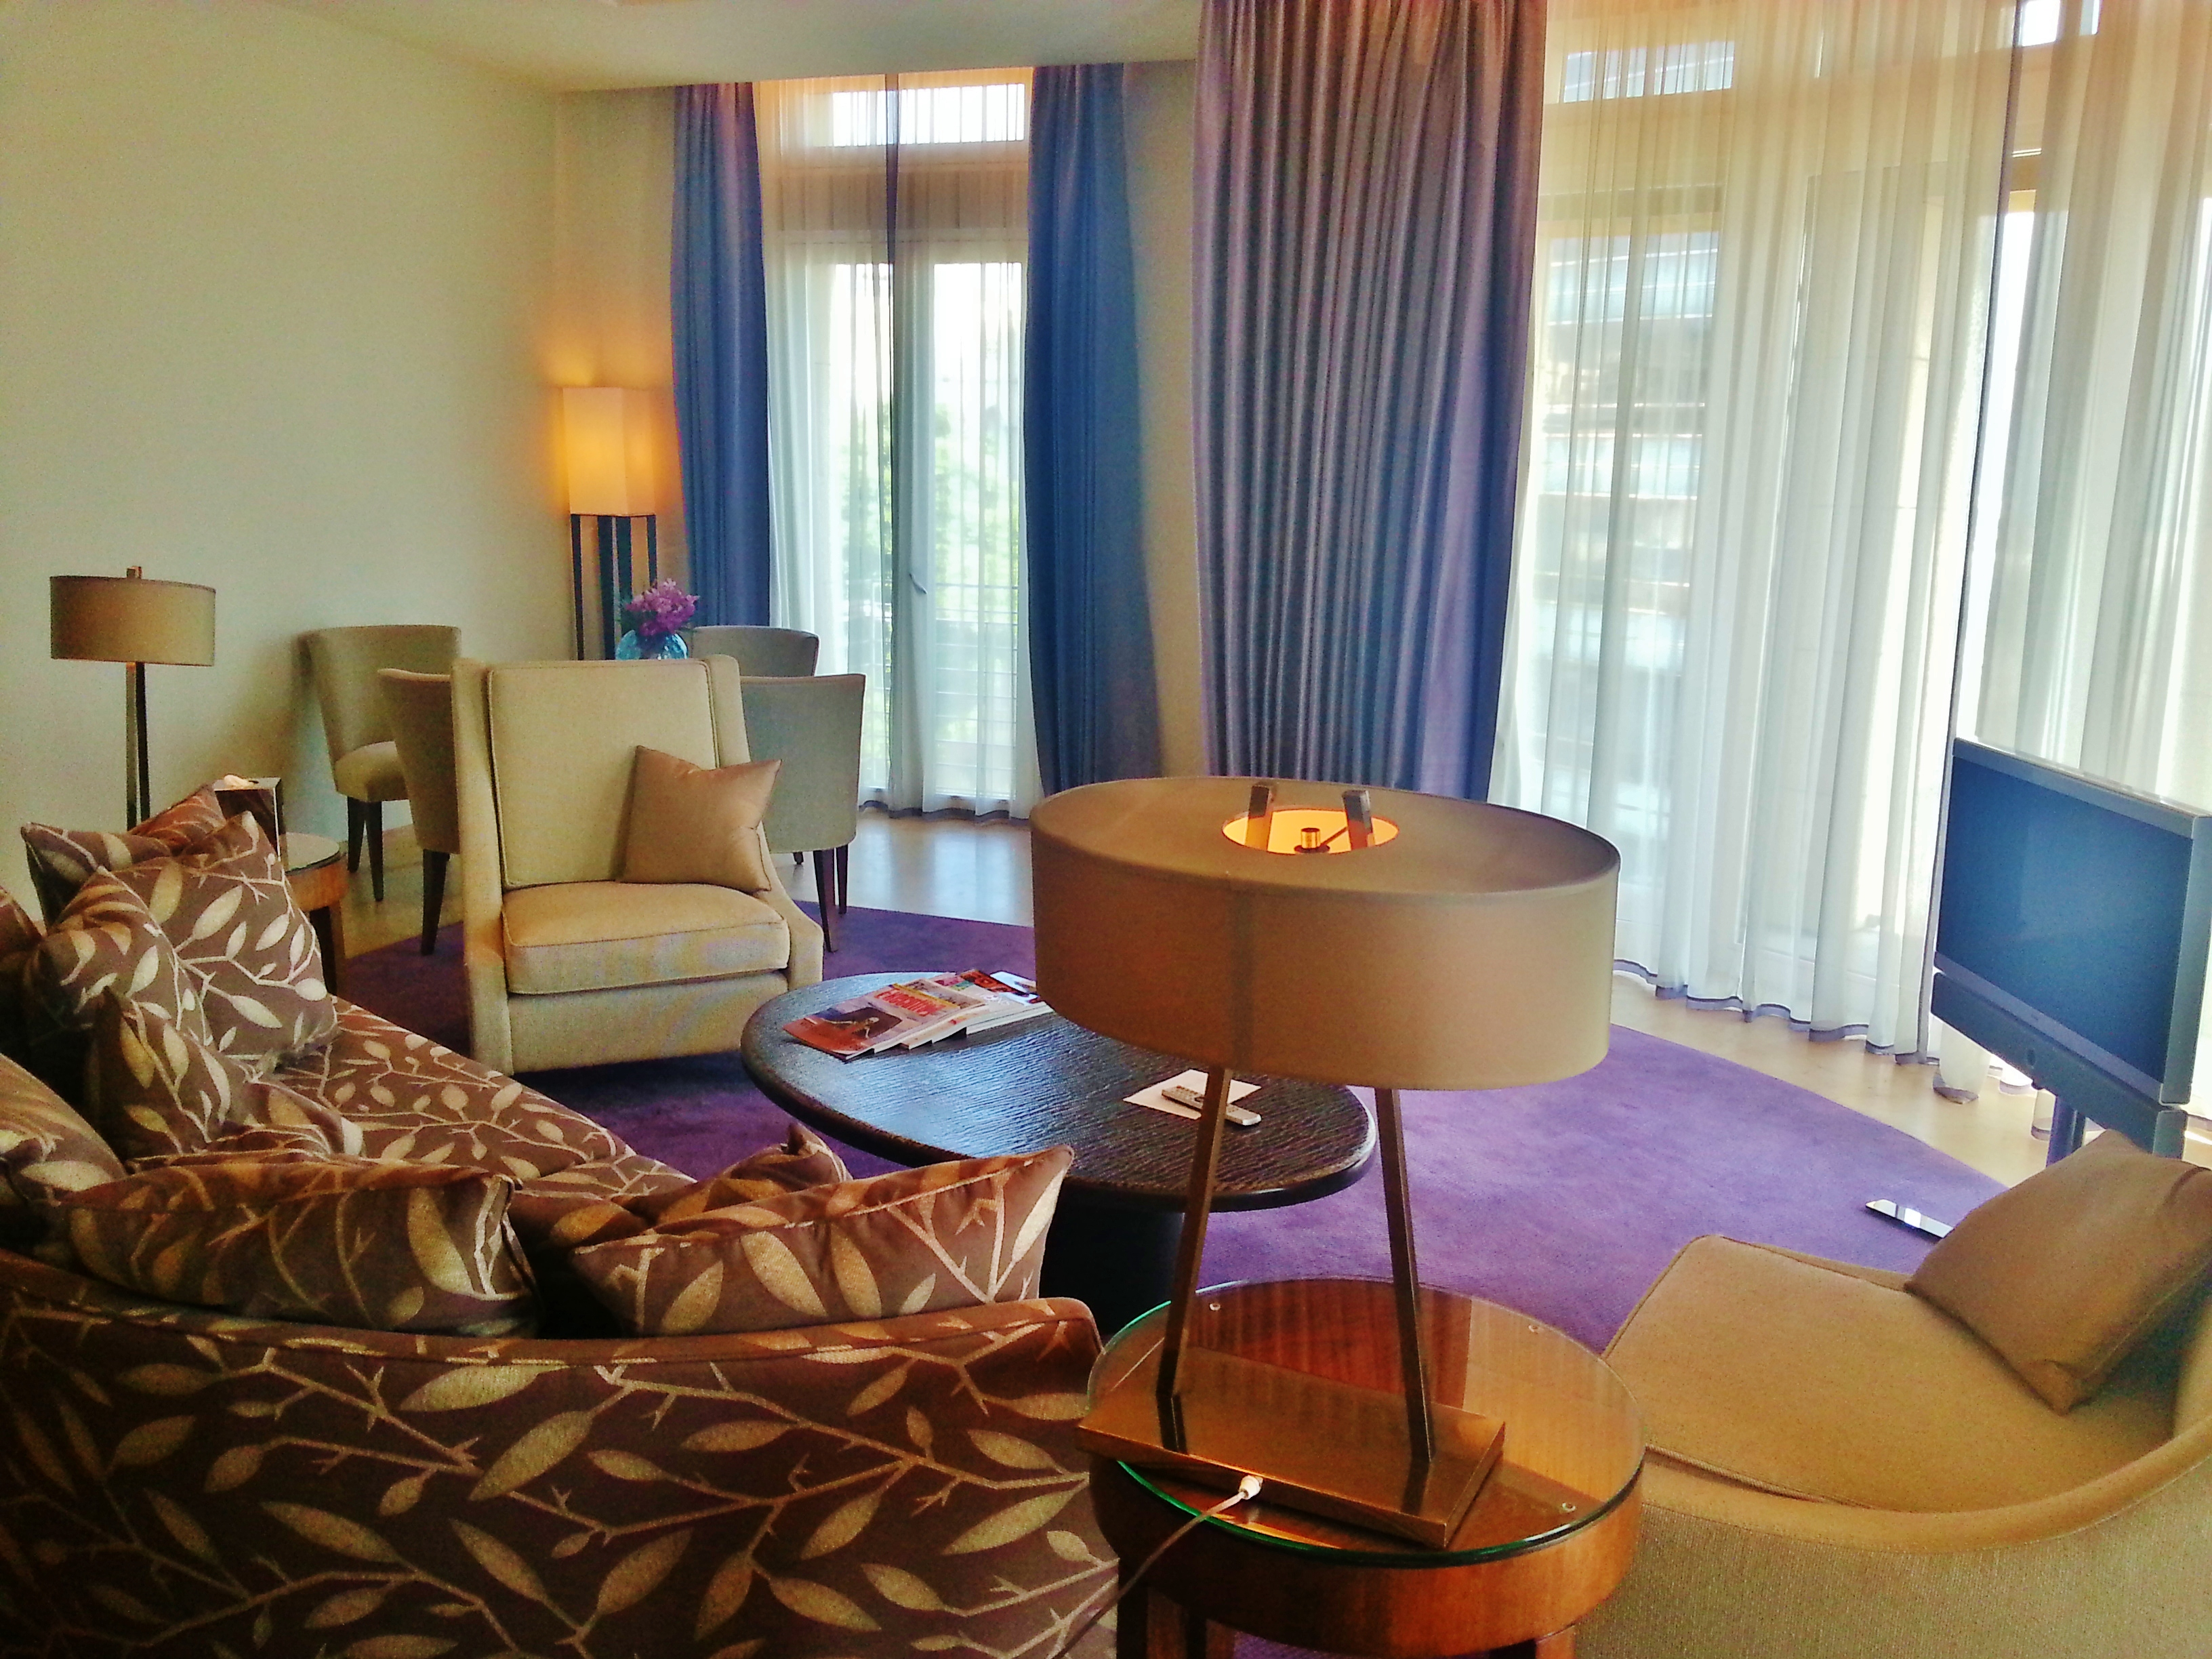 Living Room Corner Suite At Le Gray Luxury Hotel Beirut Lebanon Middle East Downtown La Solidere Martyrs Square Fashion Shopping Expensive